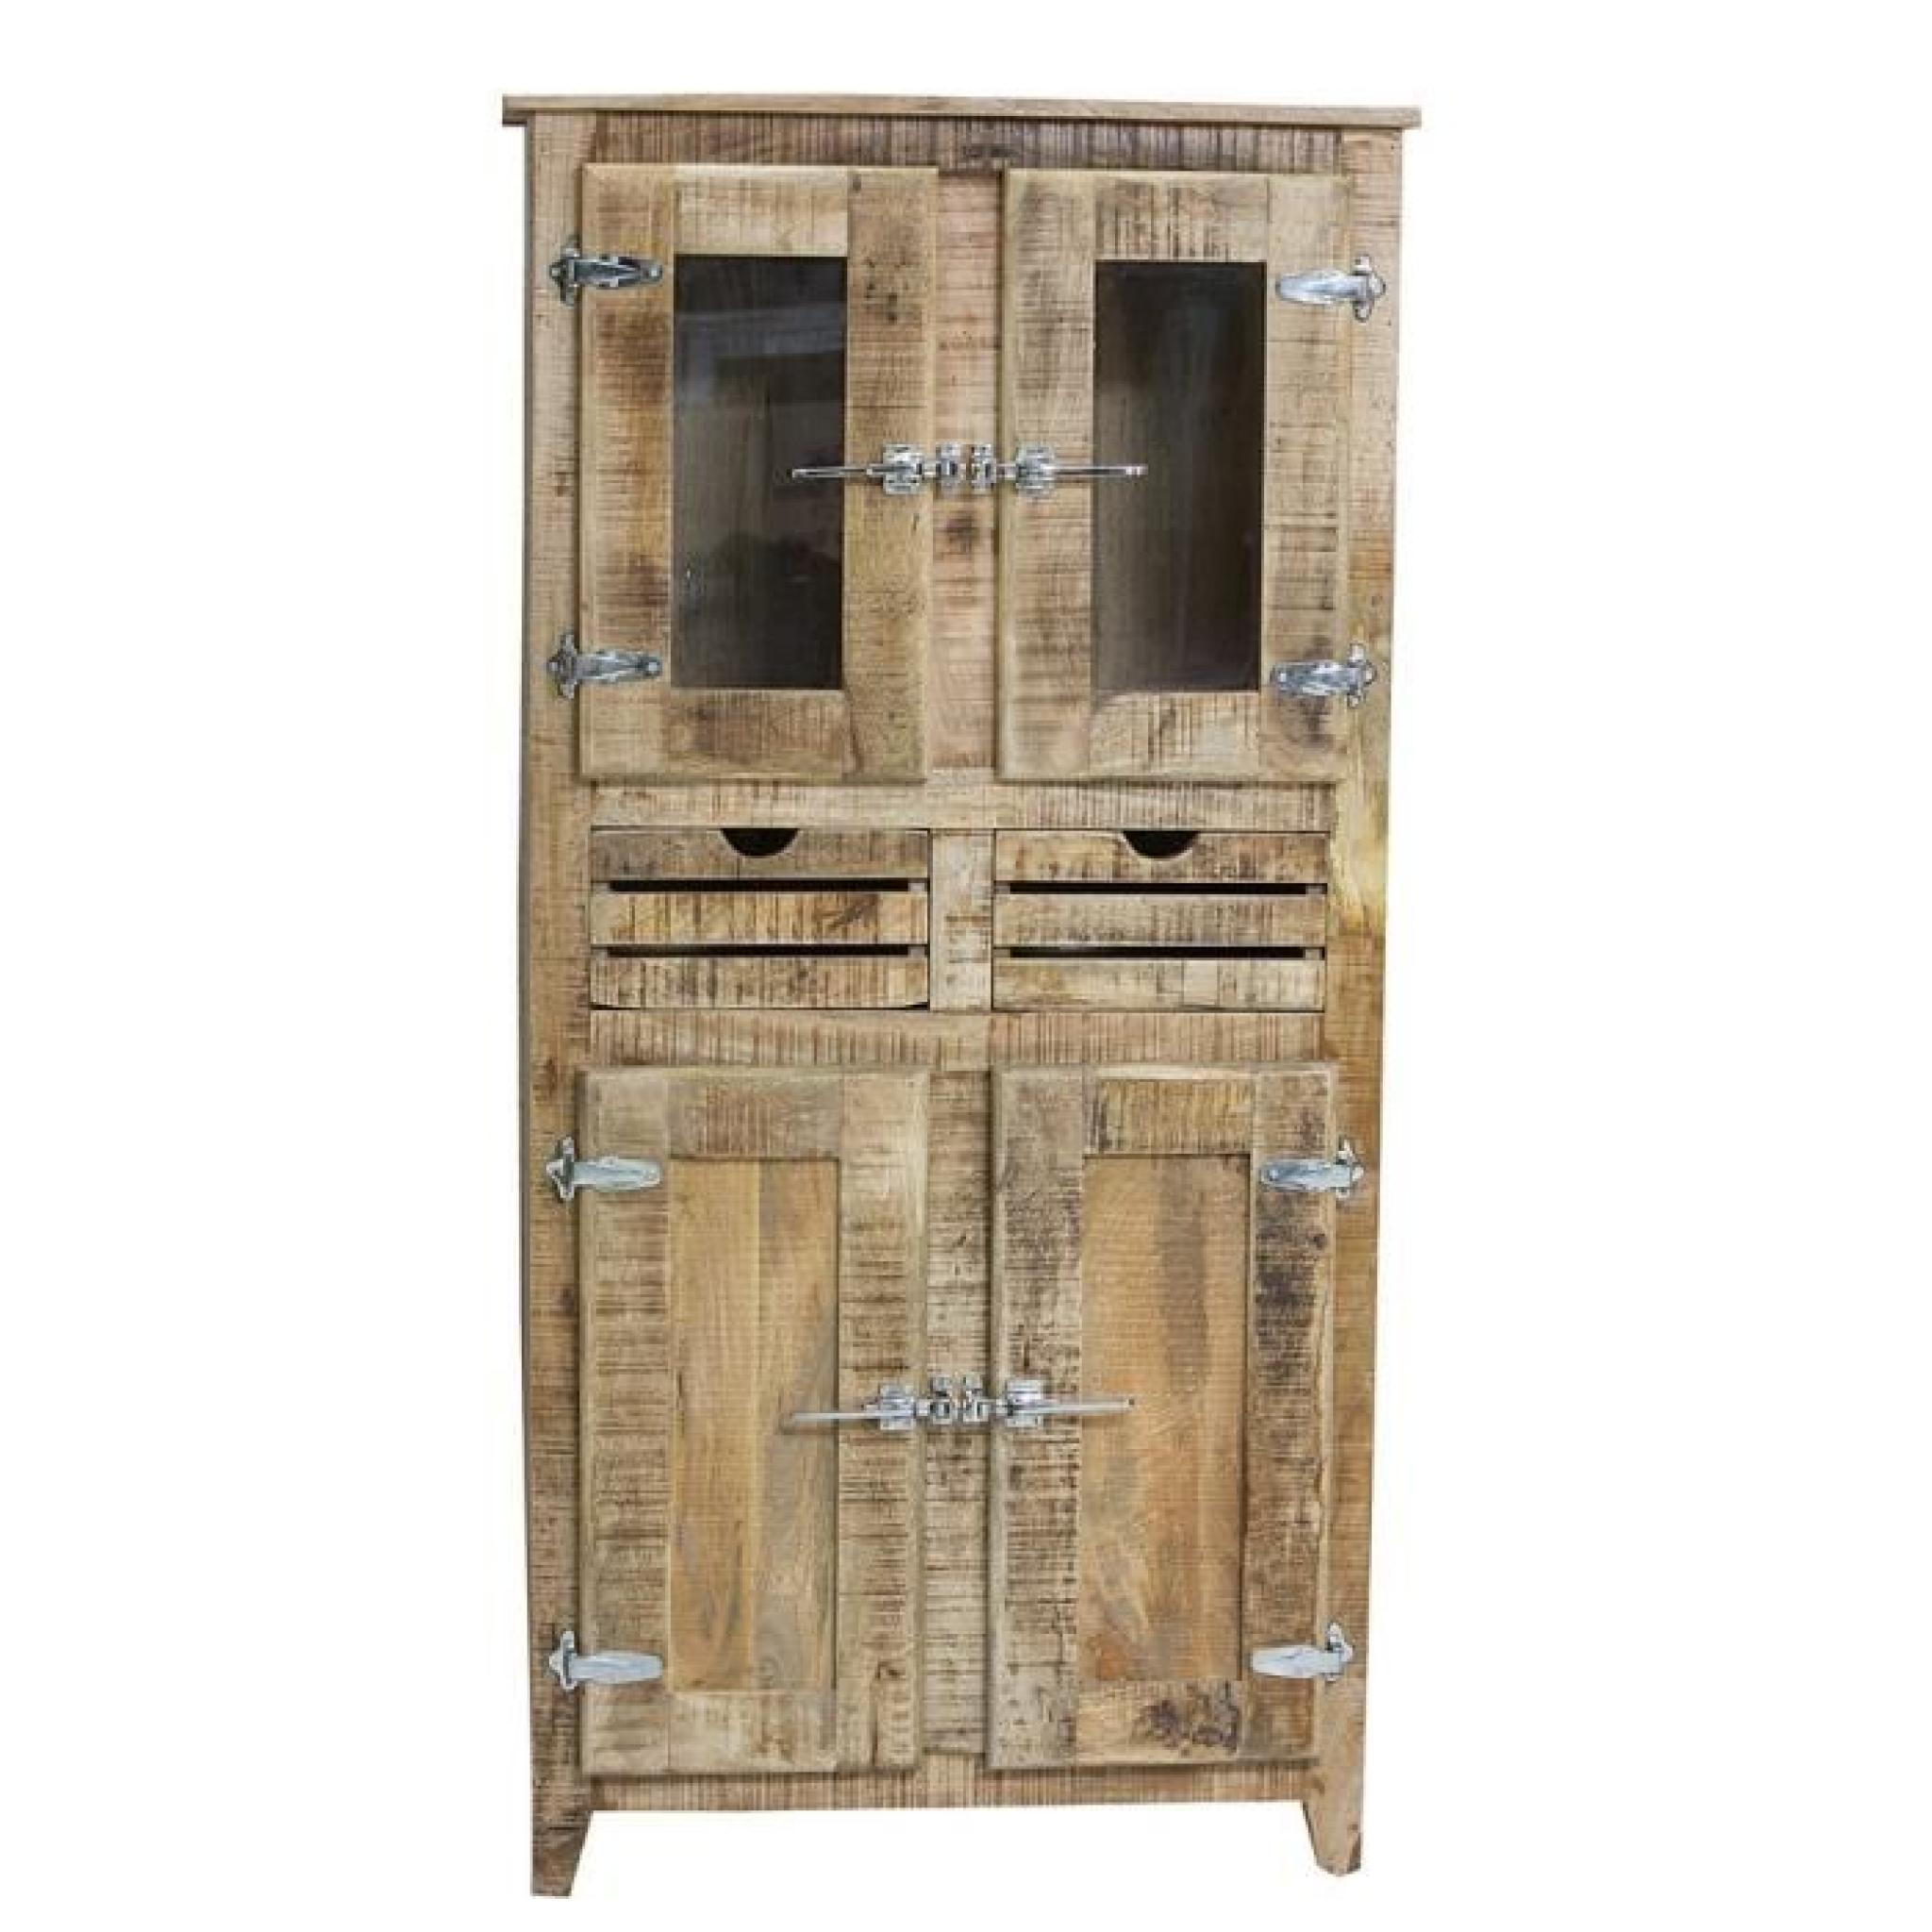 armoire 2 portes frigo bois naturel achat vente armoire. Black Bedroom Furniture Sets. Home Design Ideas